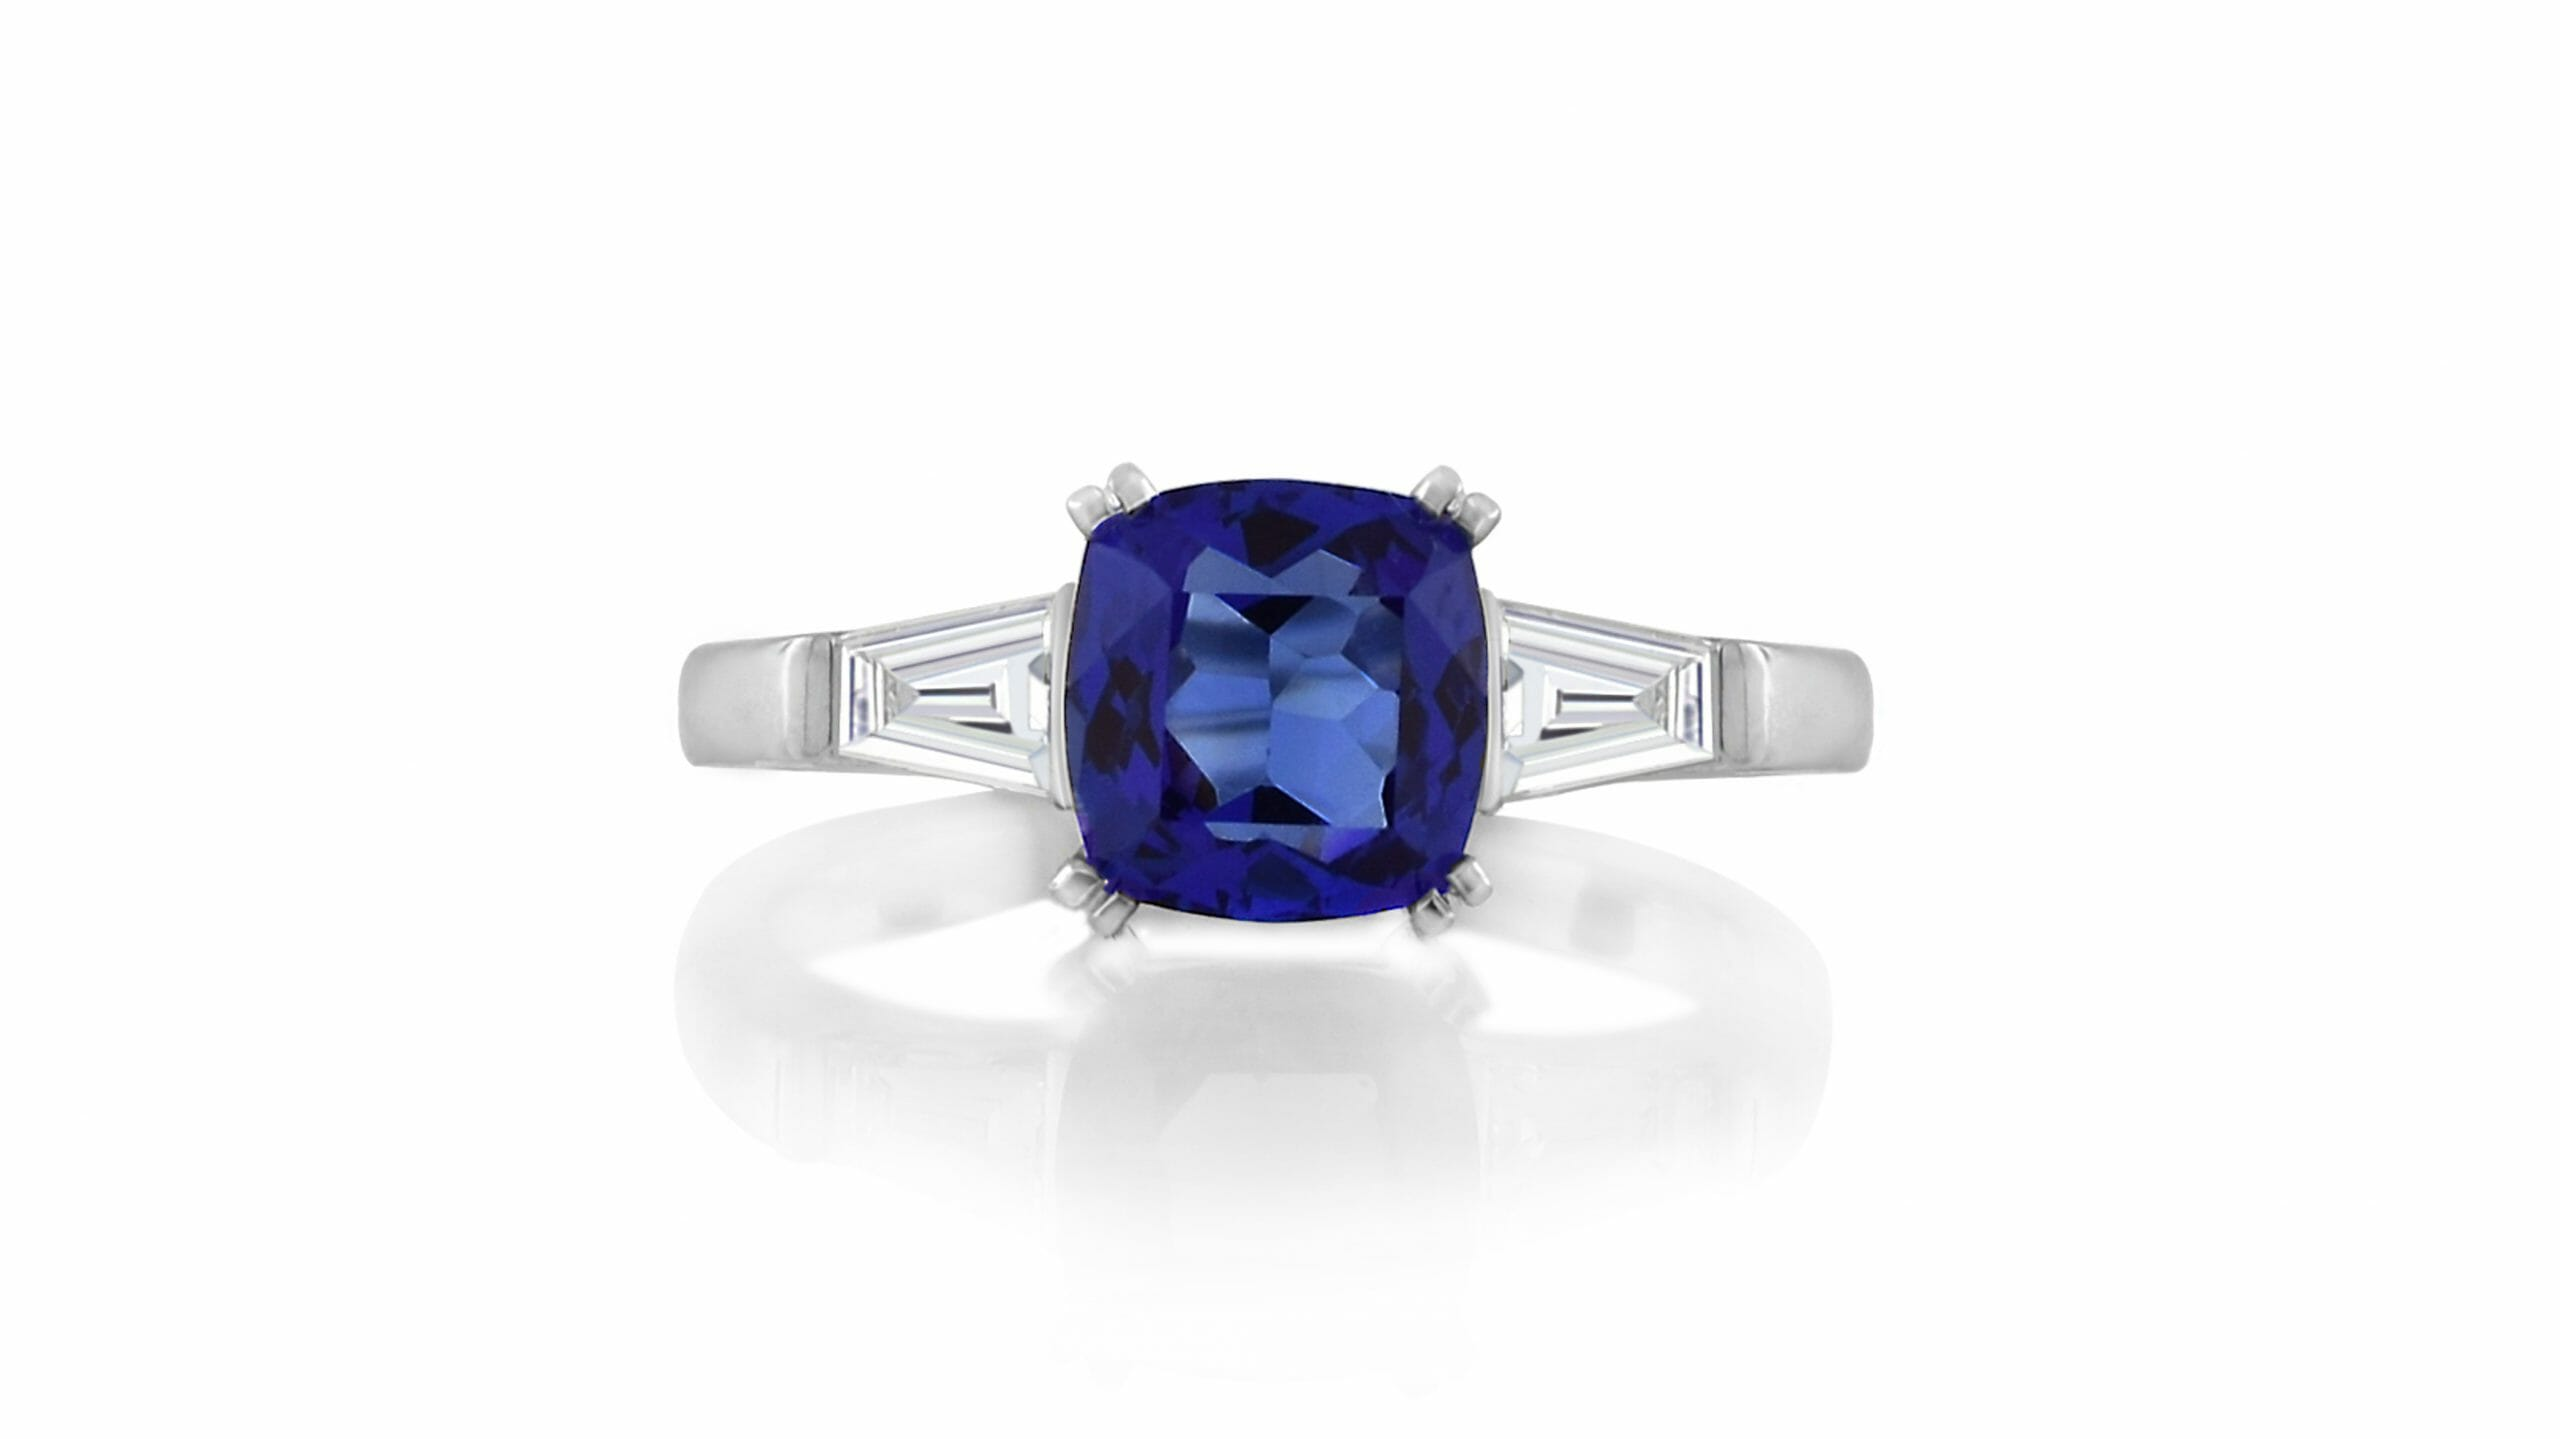 Rare African Tanzanite & Tapered Baguette Diamond RIng | Platinum ring heralds a violet blue, vivid + tanzanite & two side tapered baguette diamonds